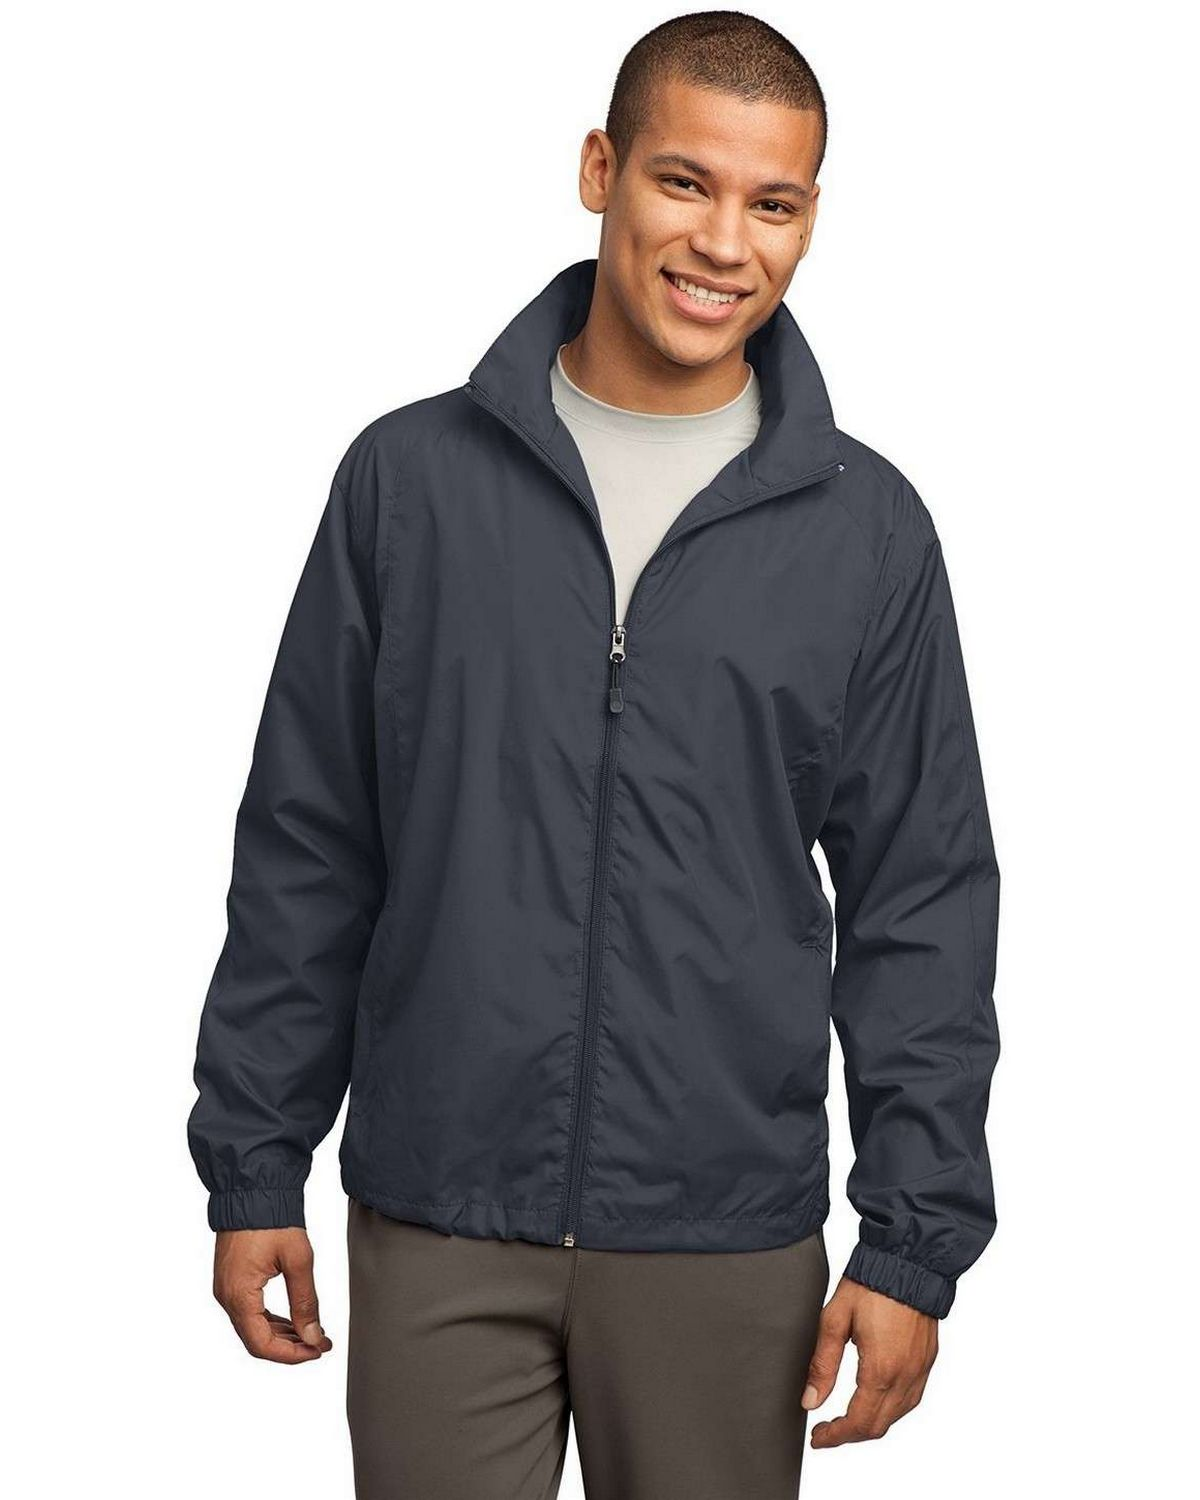 Sport-Tek JST70 Full-Zip Wind Jacket